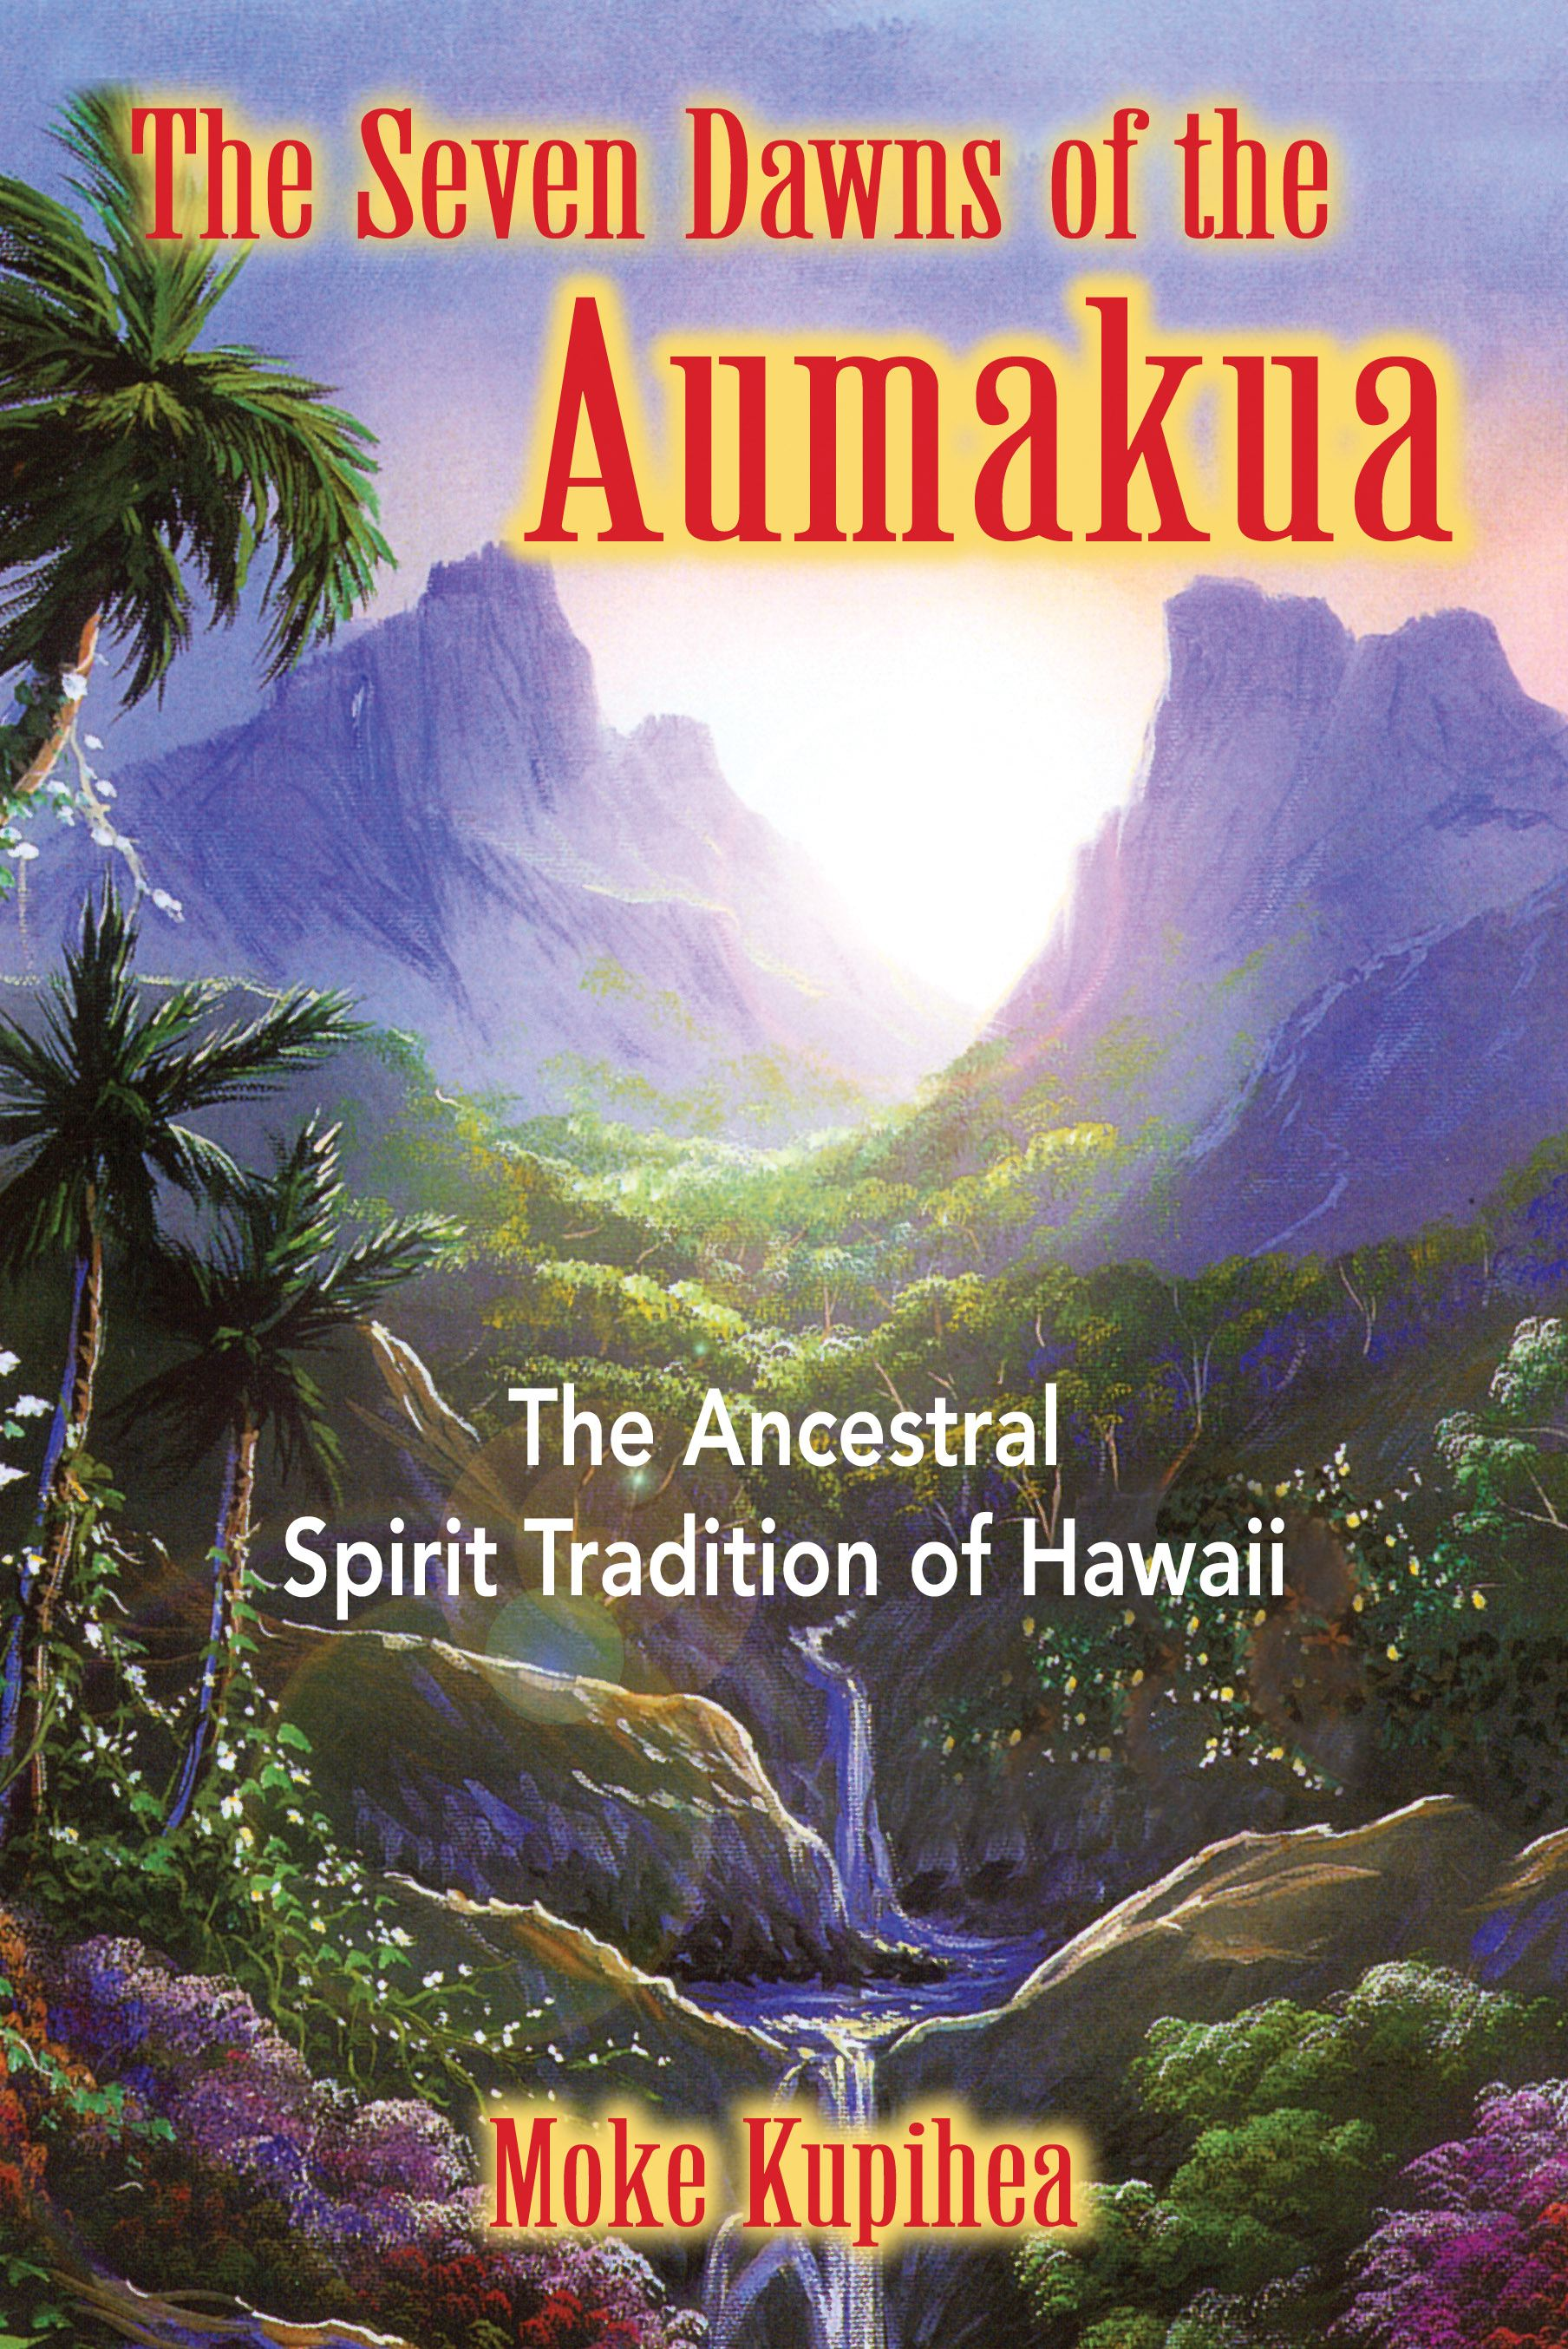 The seven dawns of the aumakua 9780892811441 hr